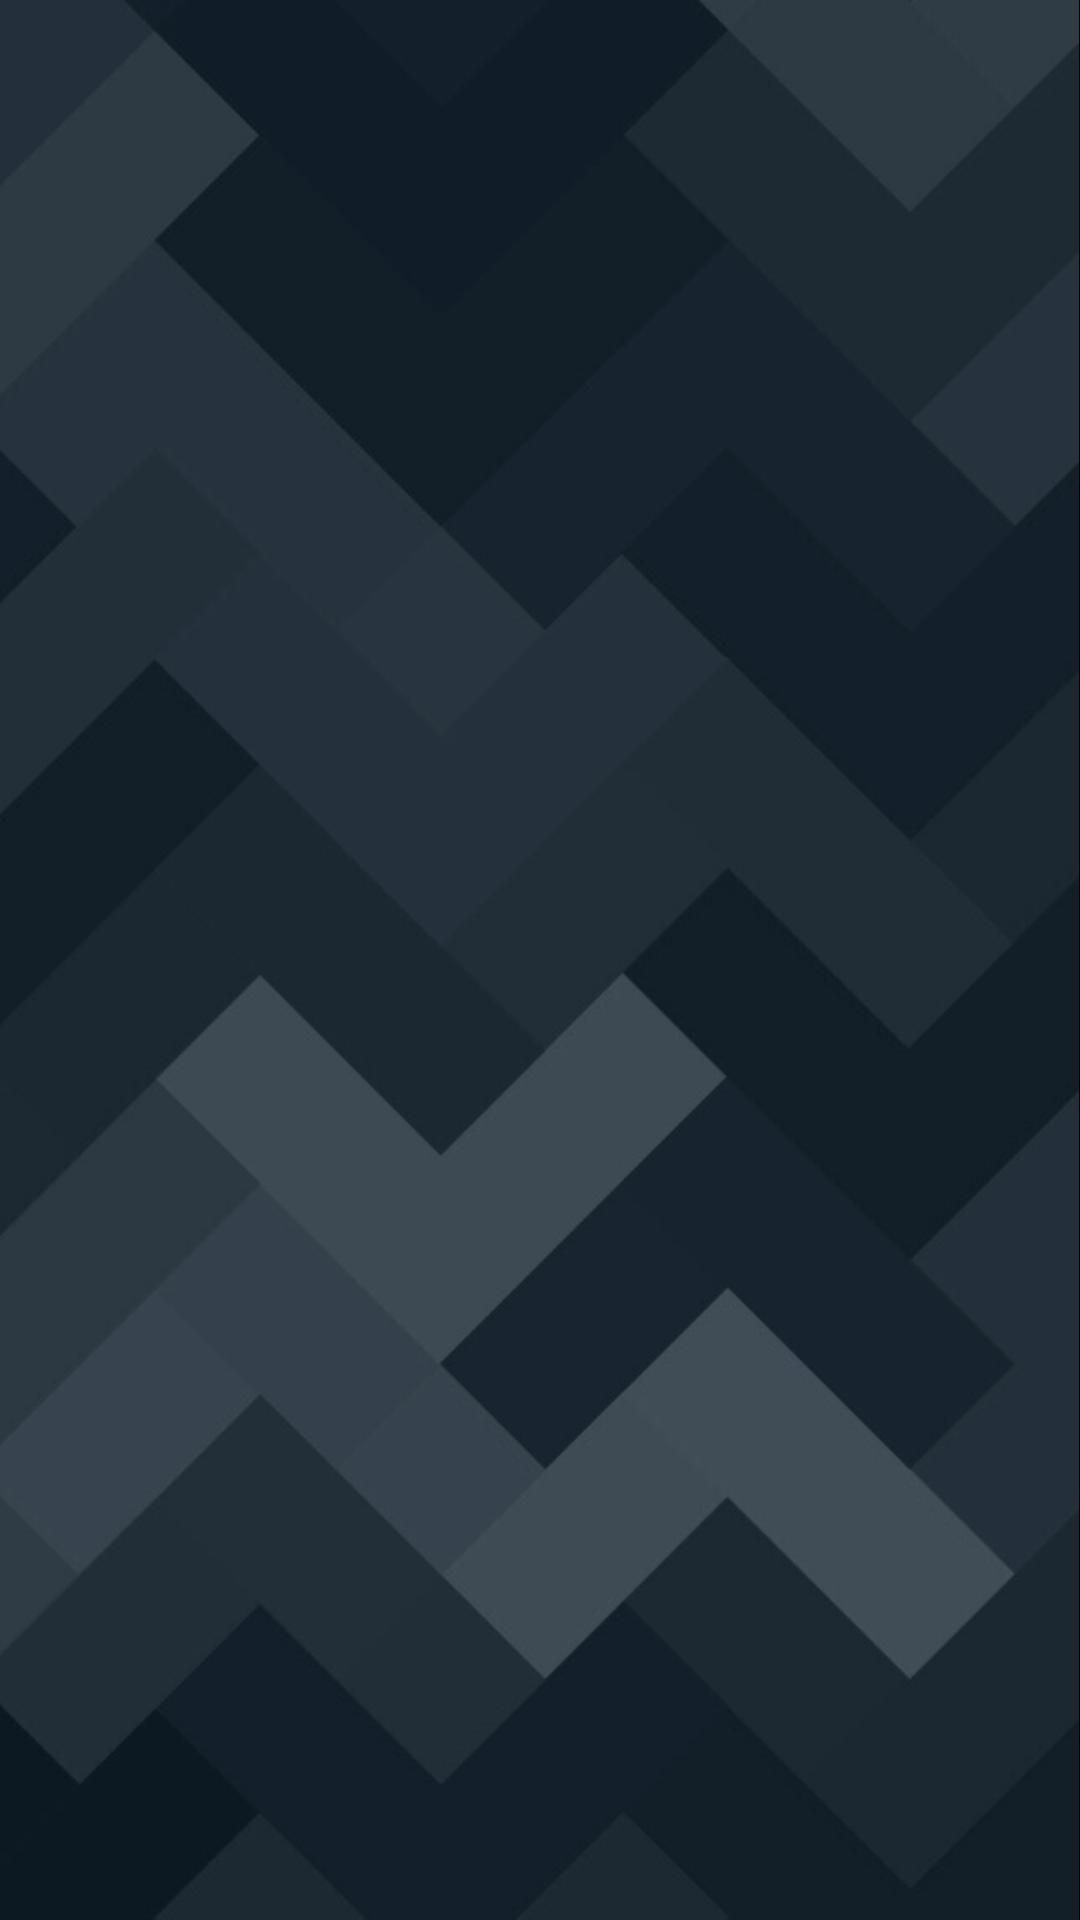 Simple-Black-Grey-Shapes-Pattern-Tap-to-see-